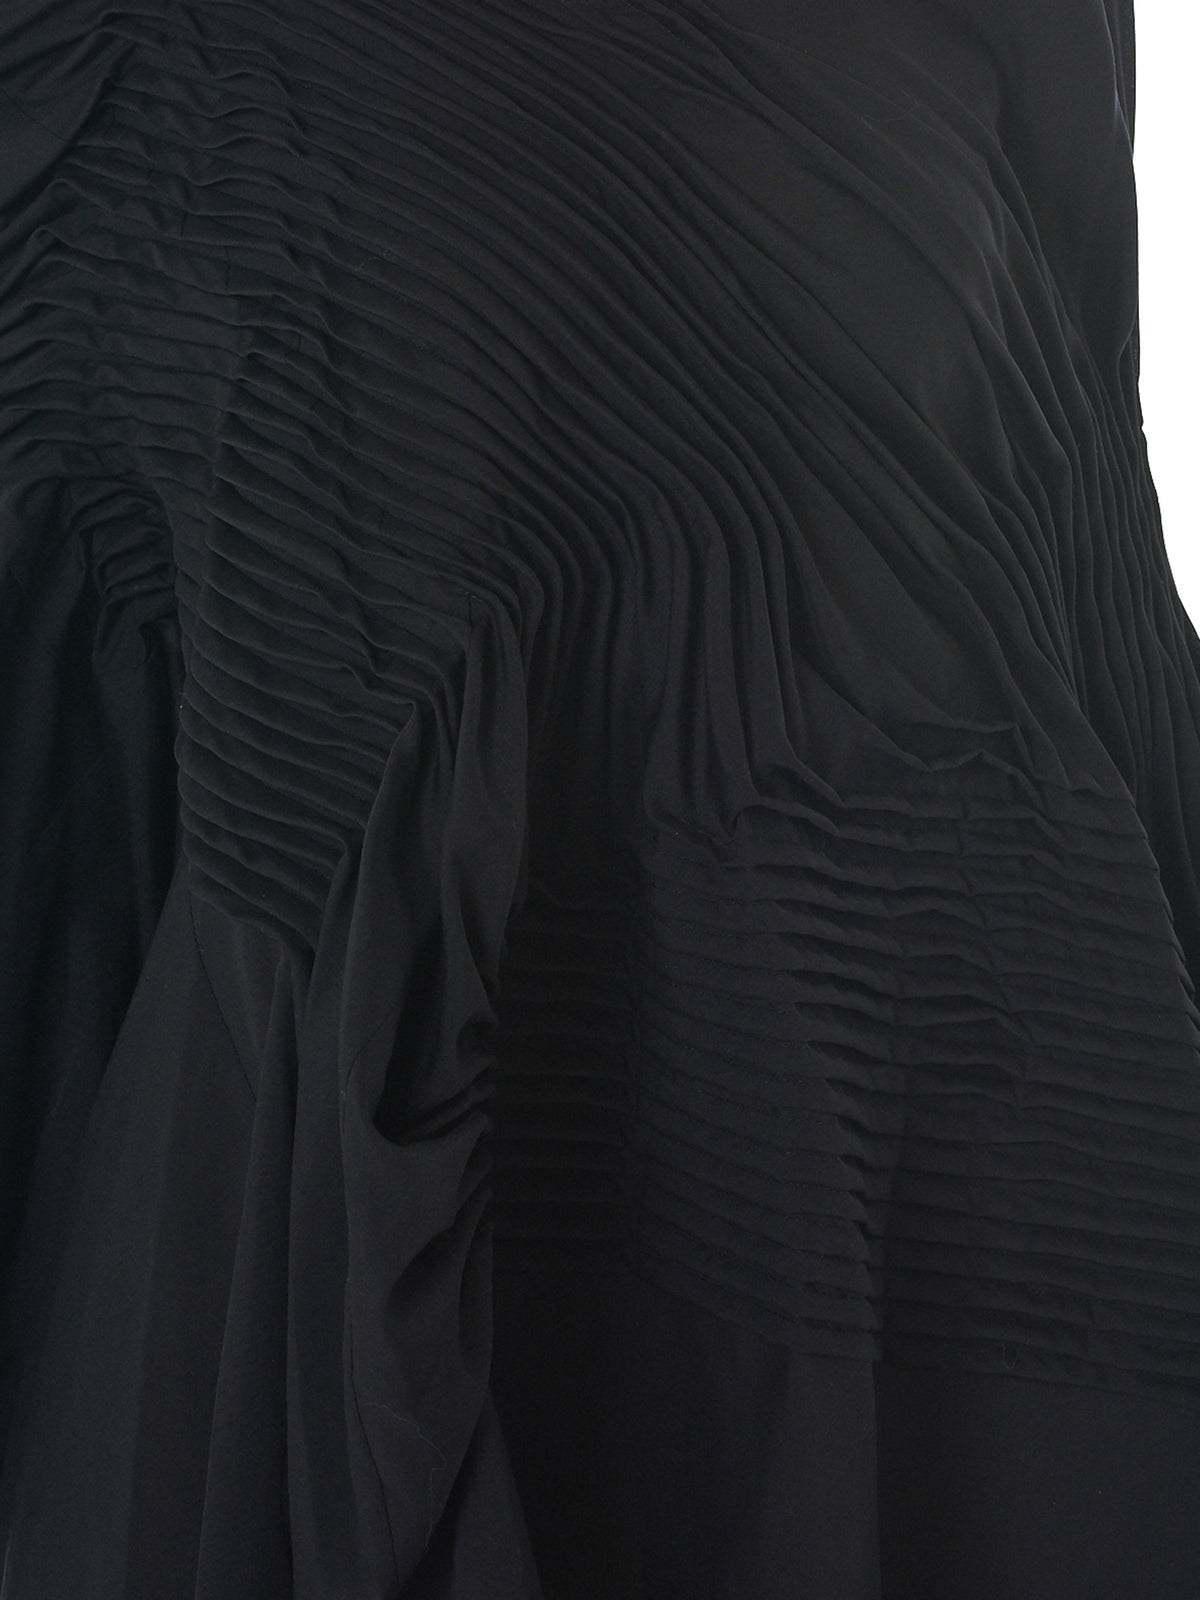 Pleated Asymmetric Dress (JA-O073-051-BLACK)